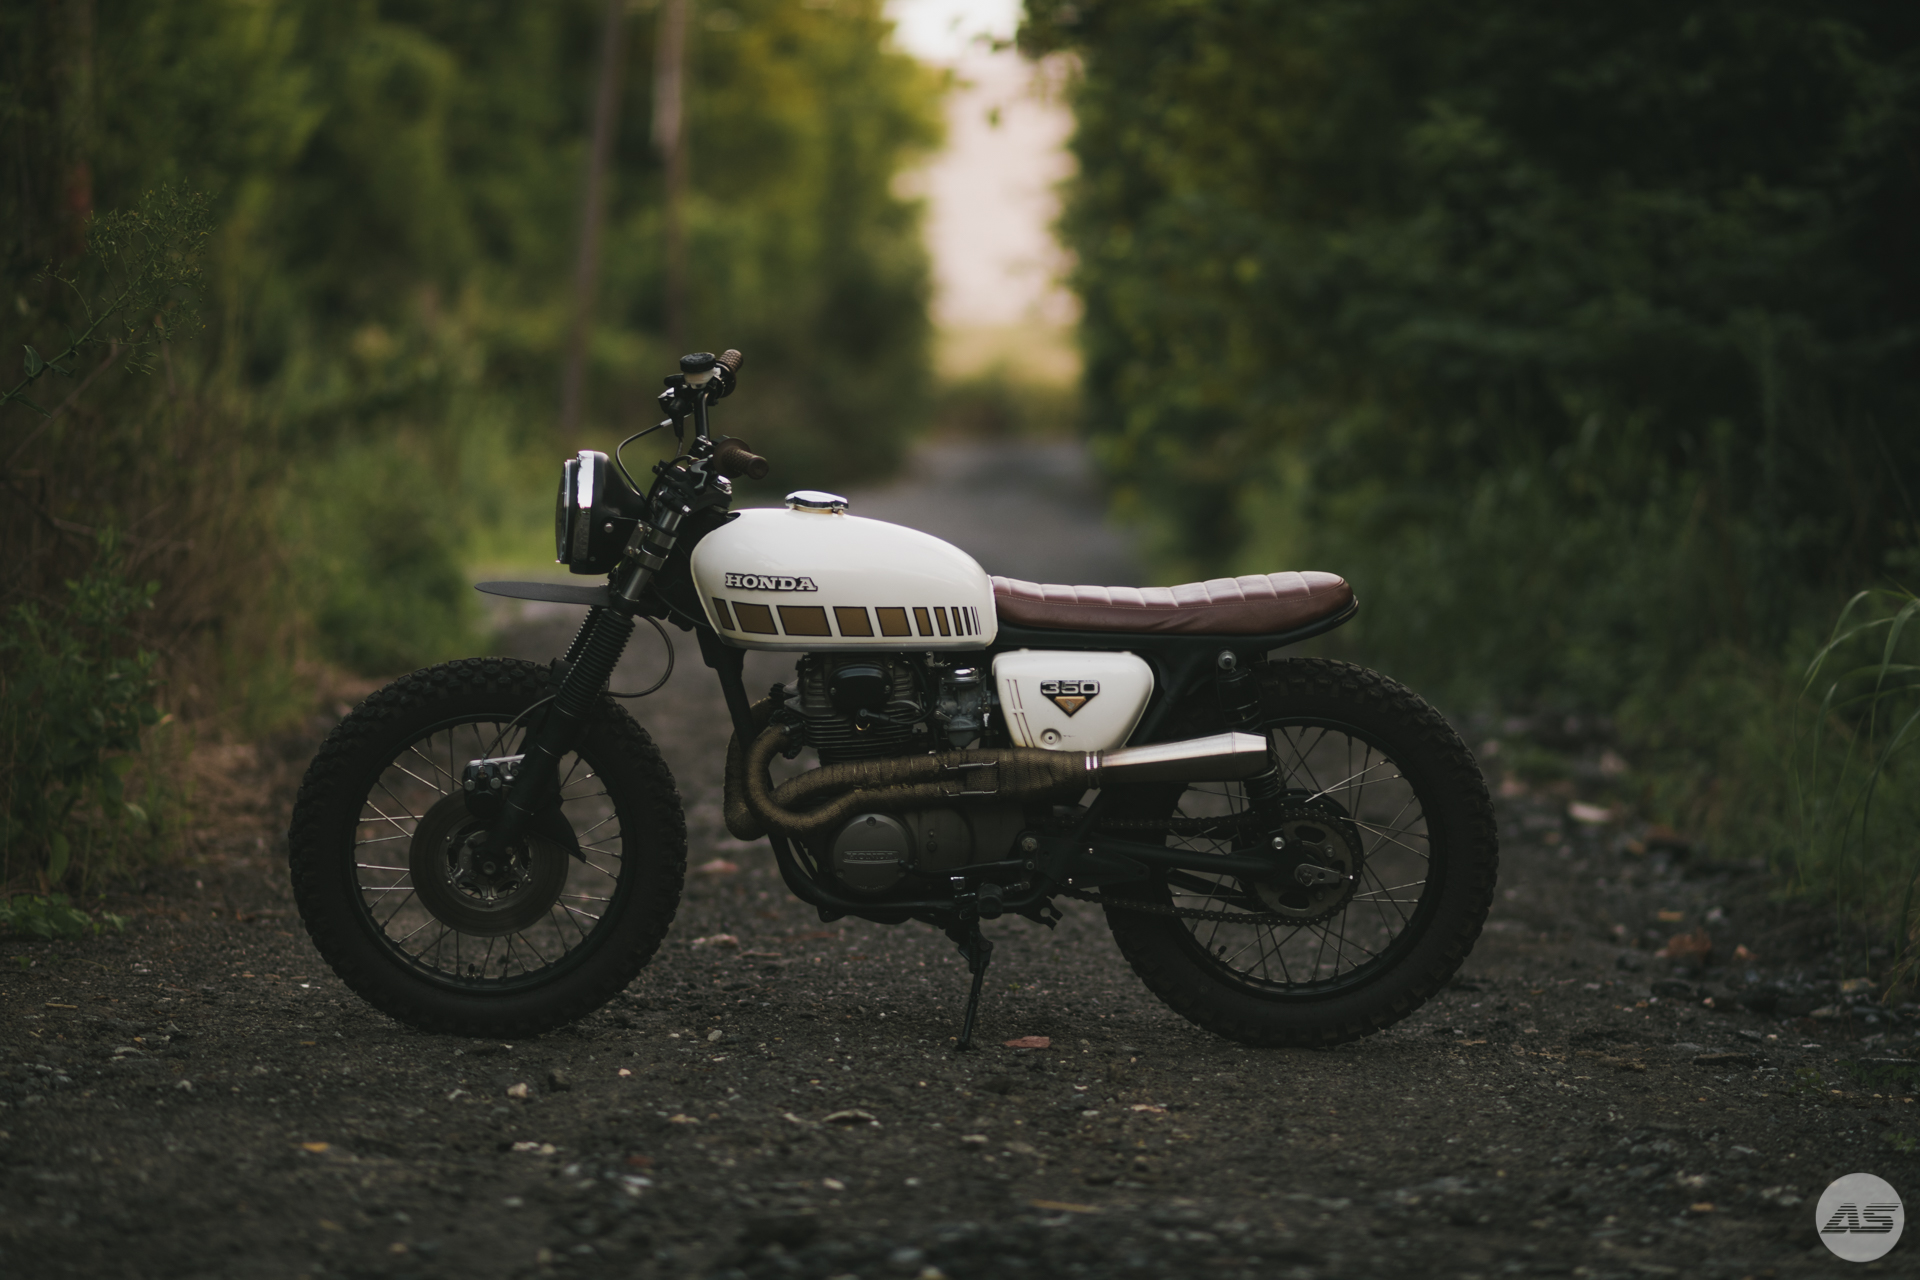 1972 Honda CB350 - Macon, GA | July 2018